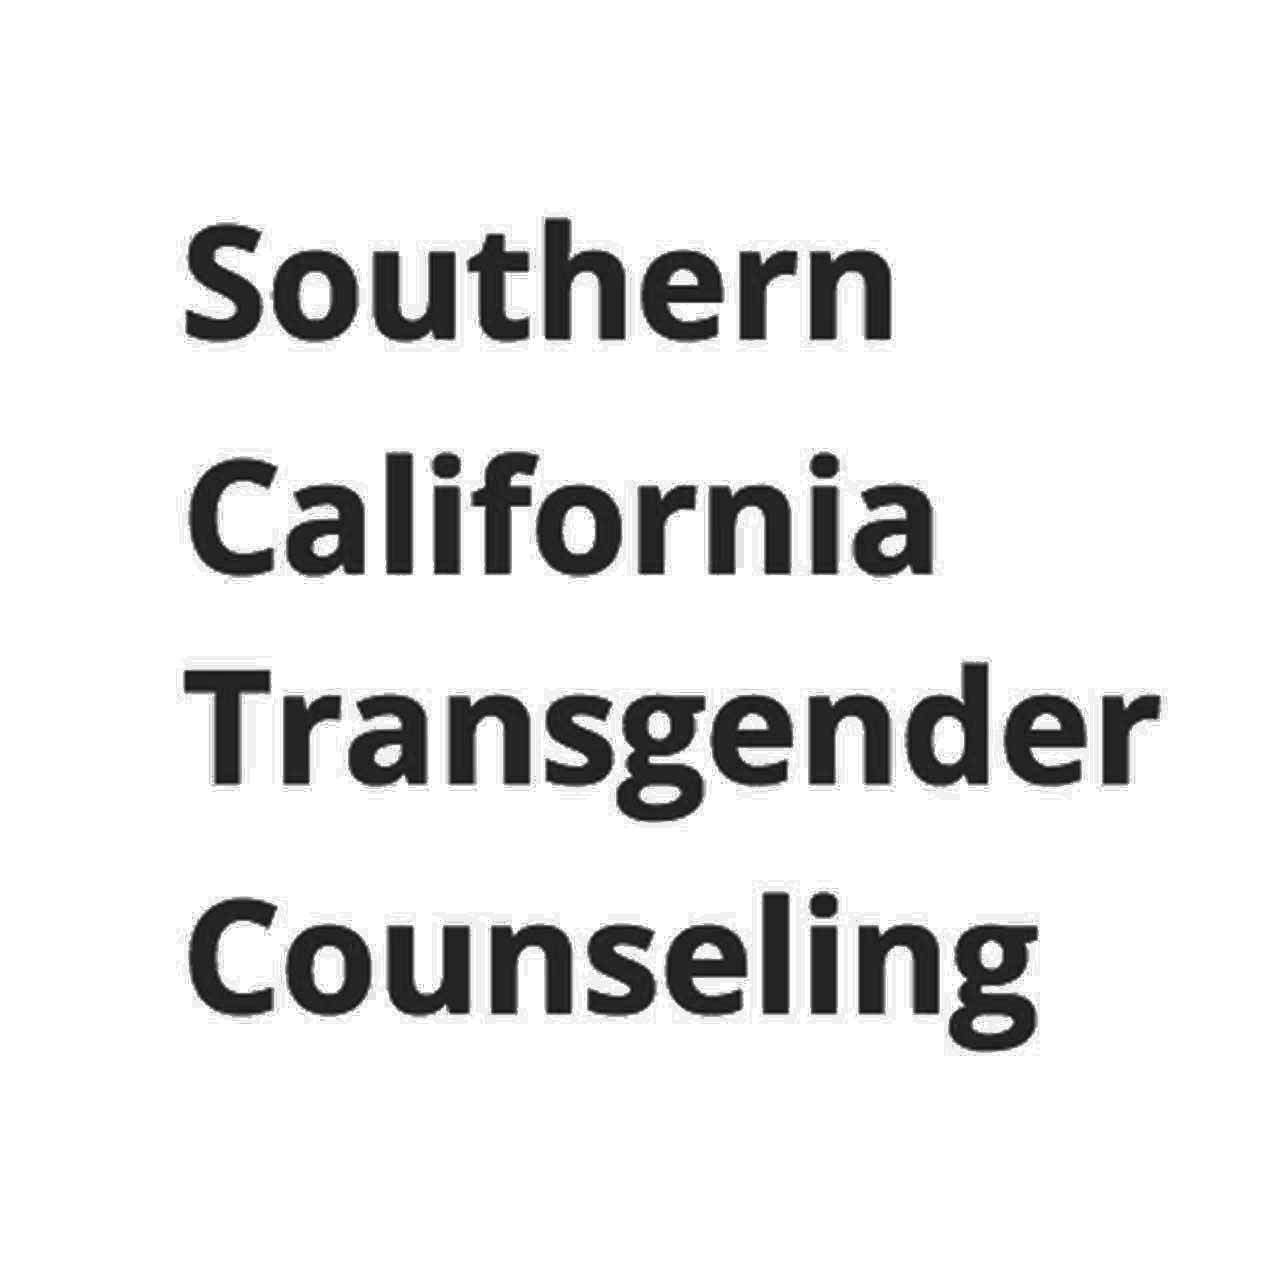 SOUTHERN CALIFORNIA TRANSGENDER COUNSELING